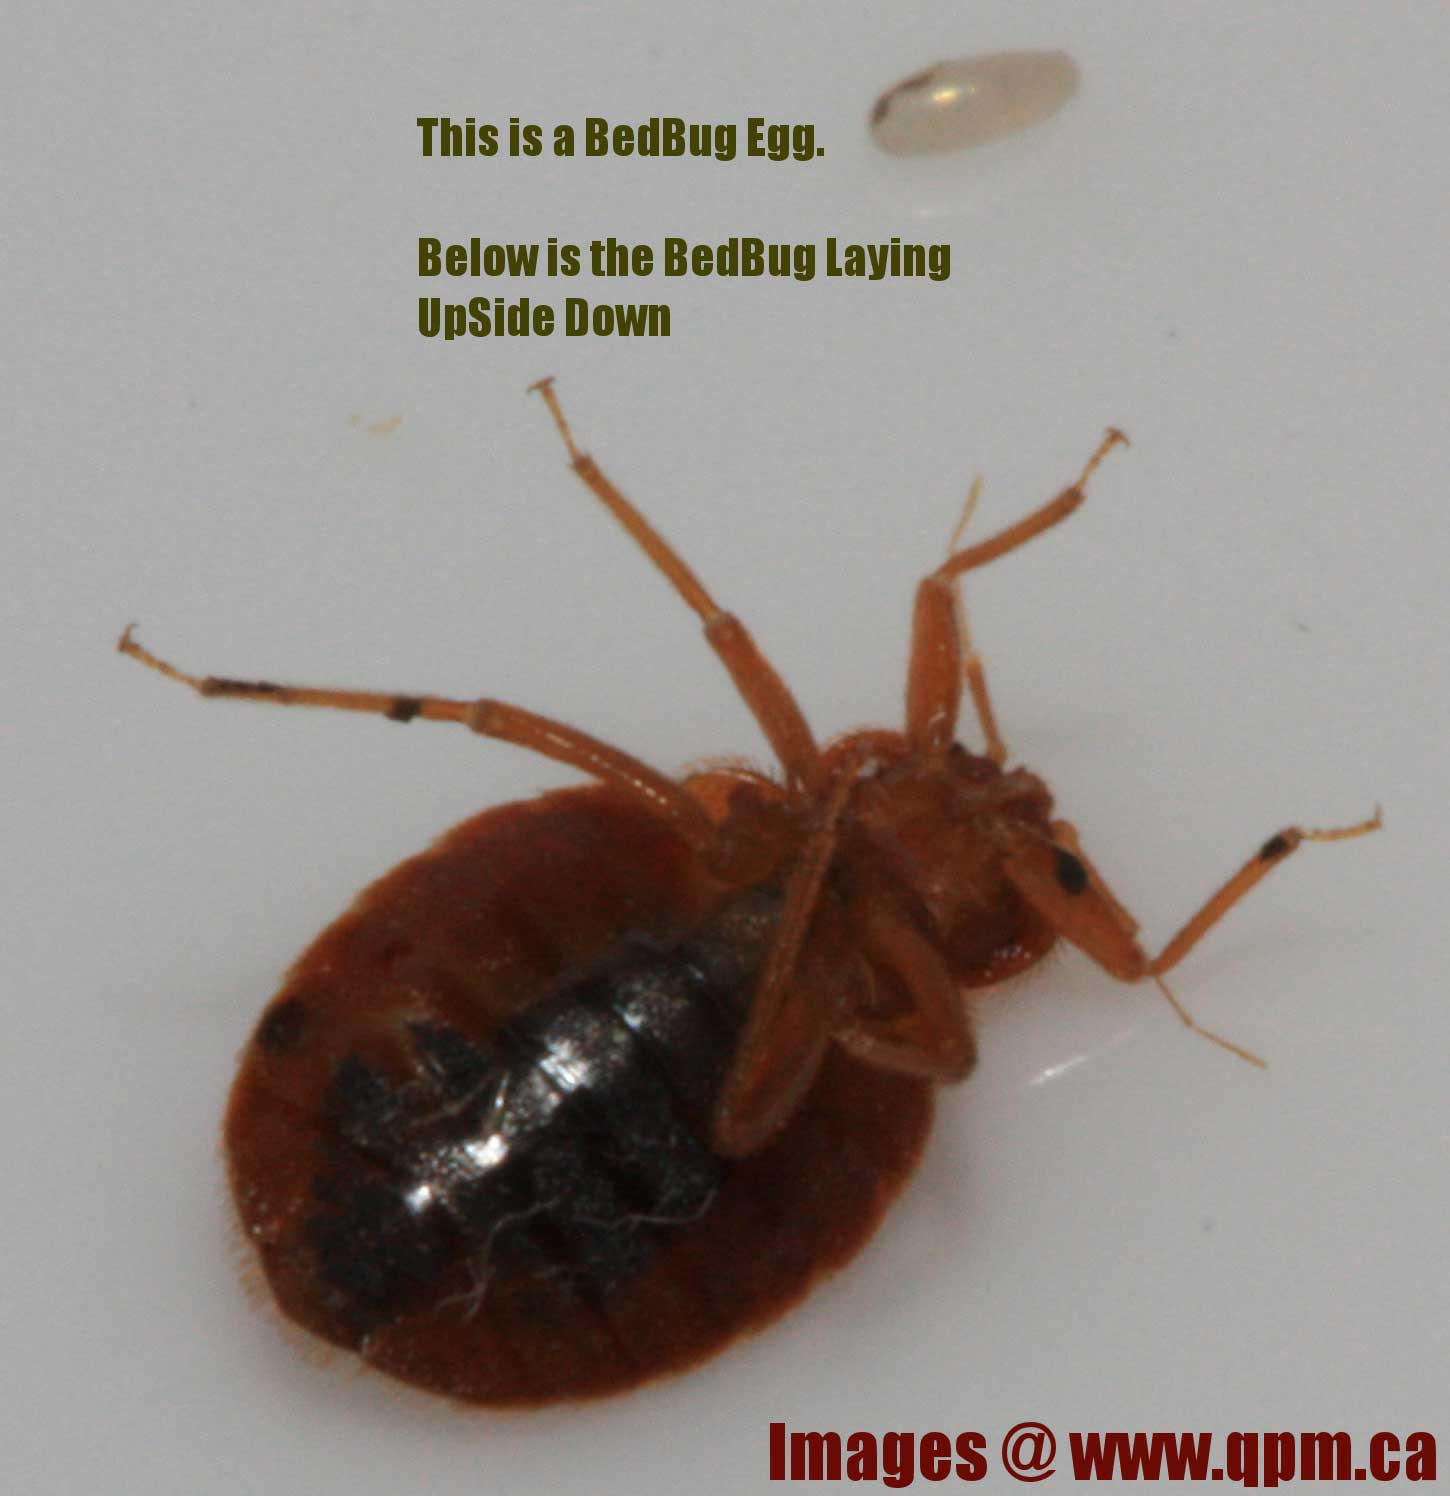 An Adult Bed Bug on It